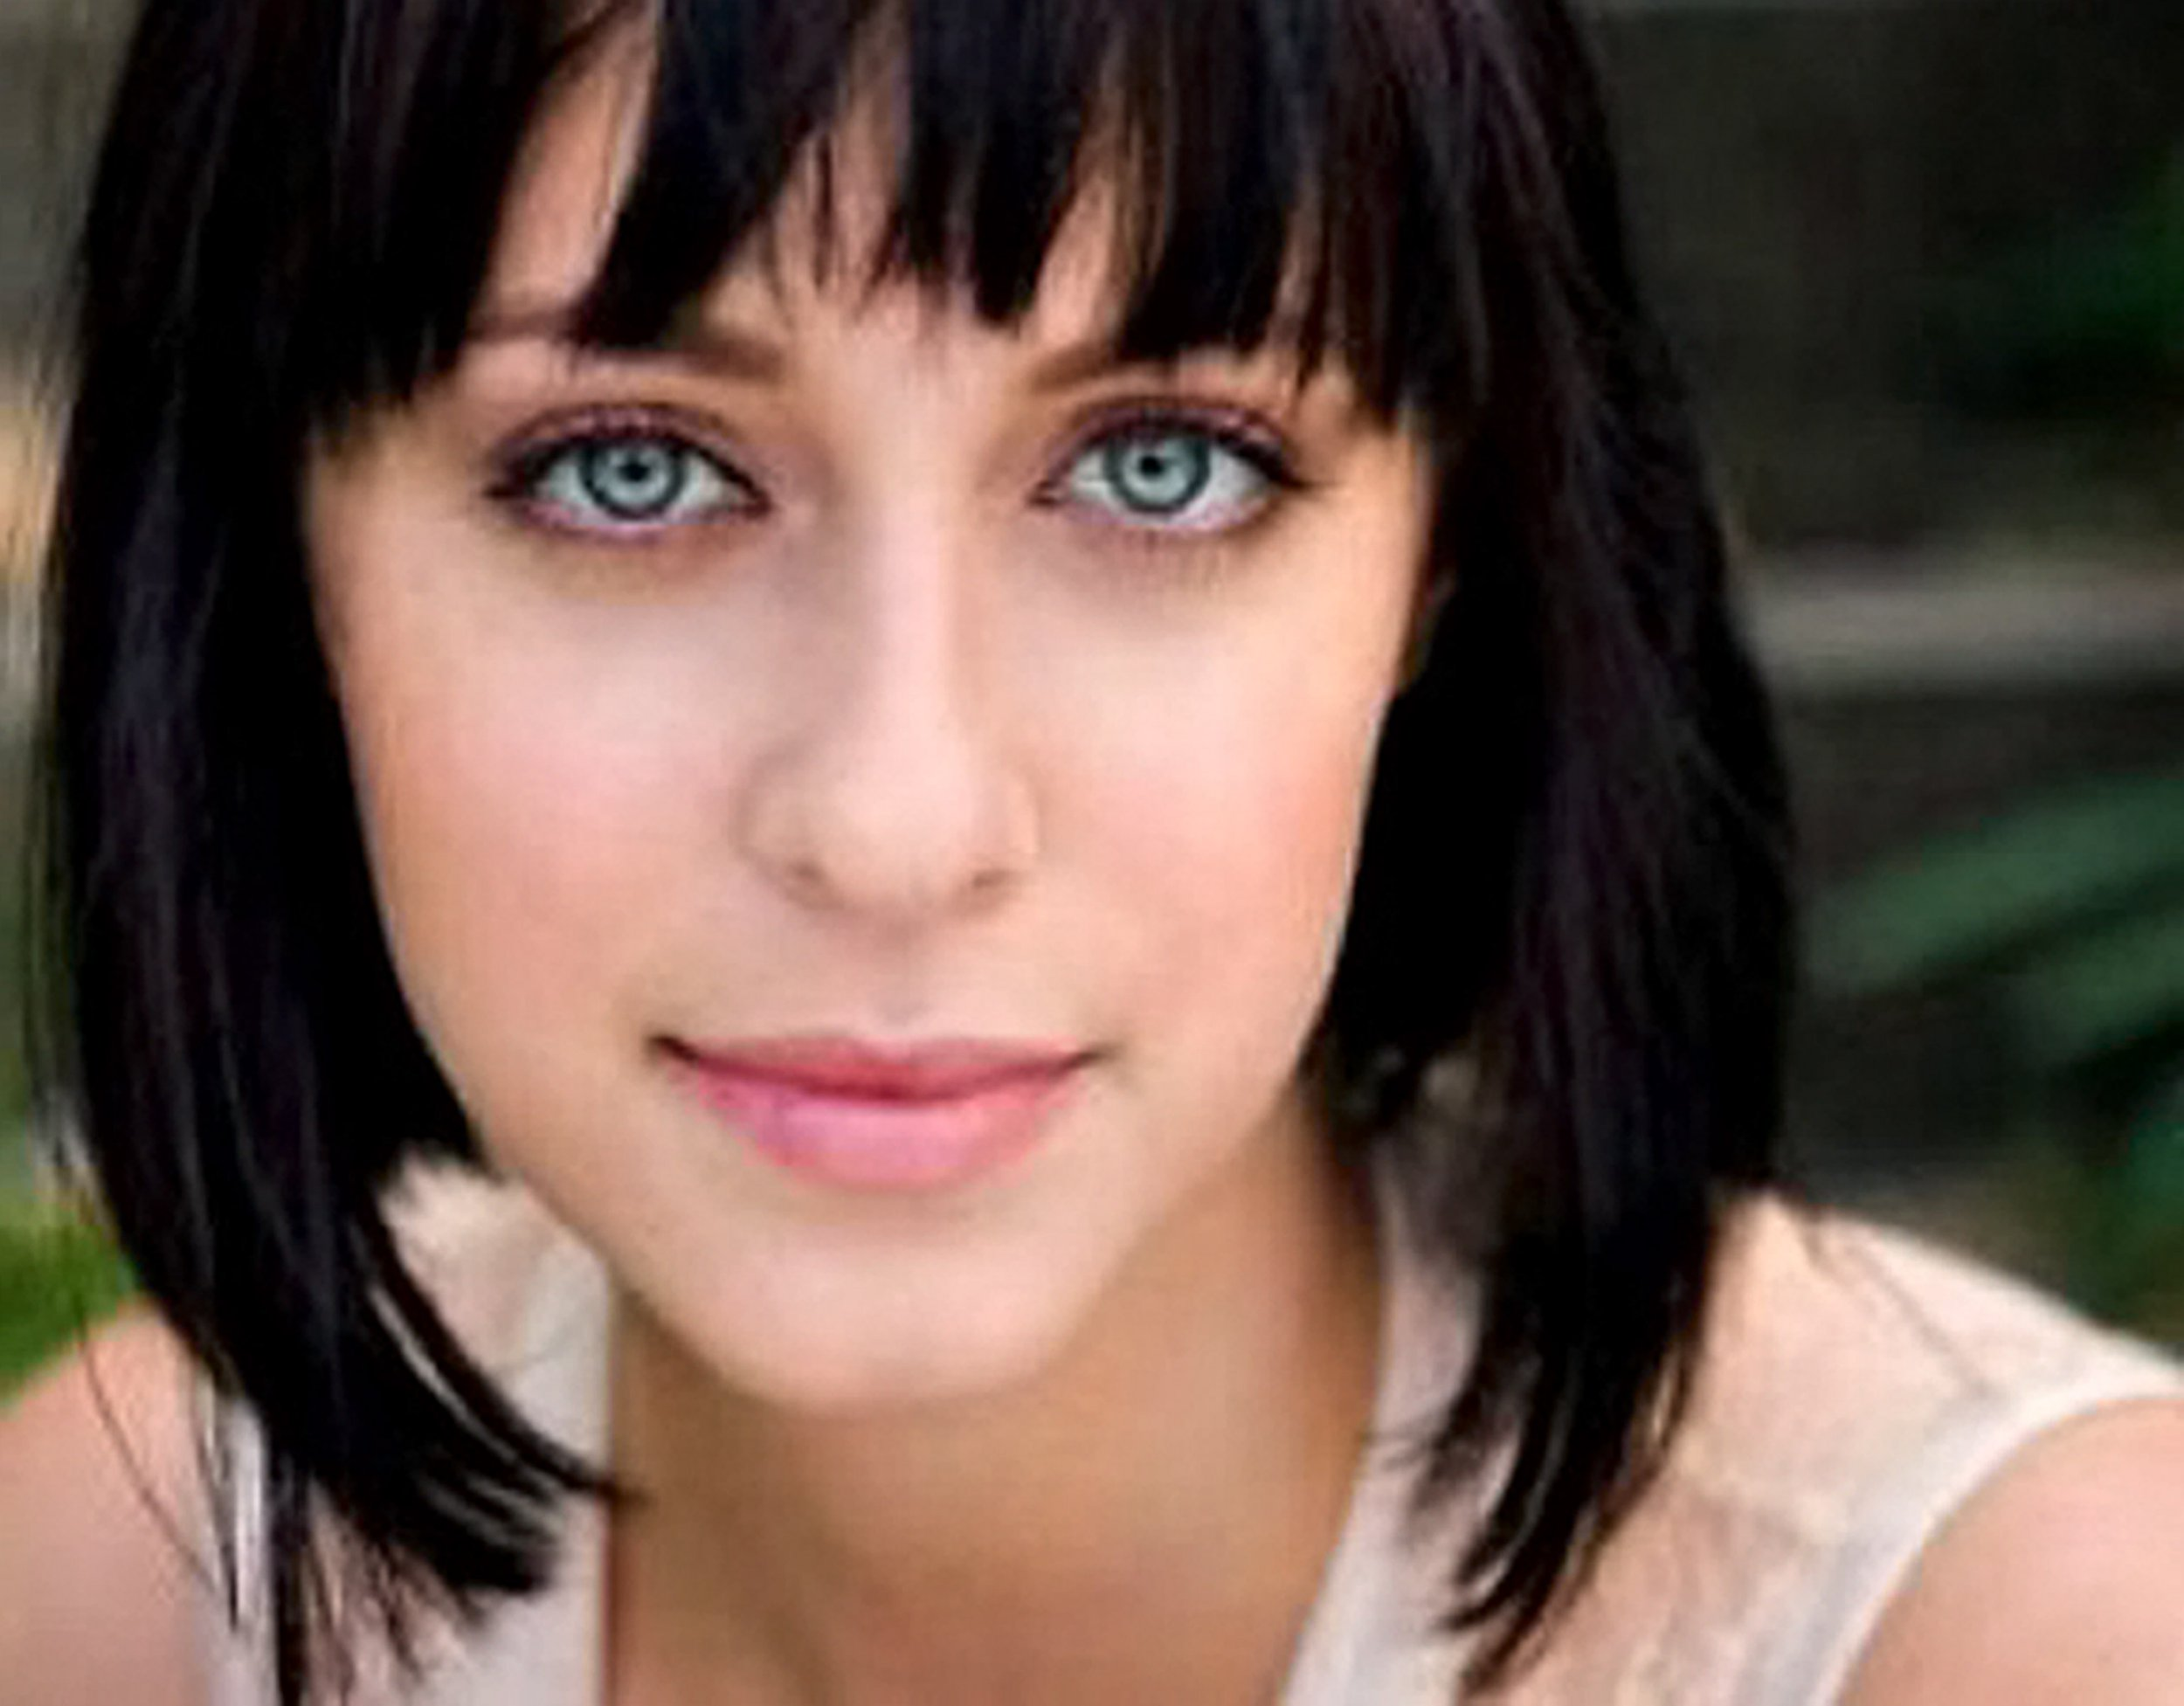 Home and Away actress Jessica Falkholt dies aged 29 a week after life support is switched off